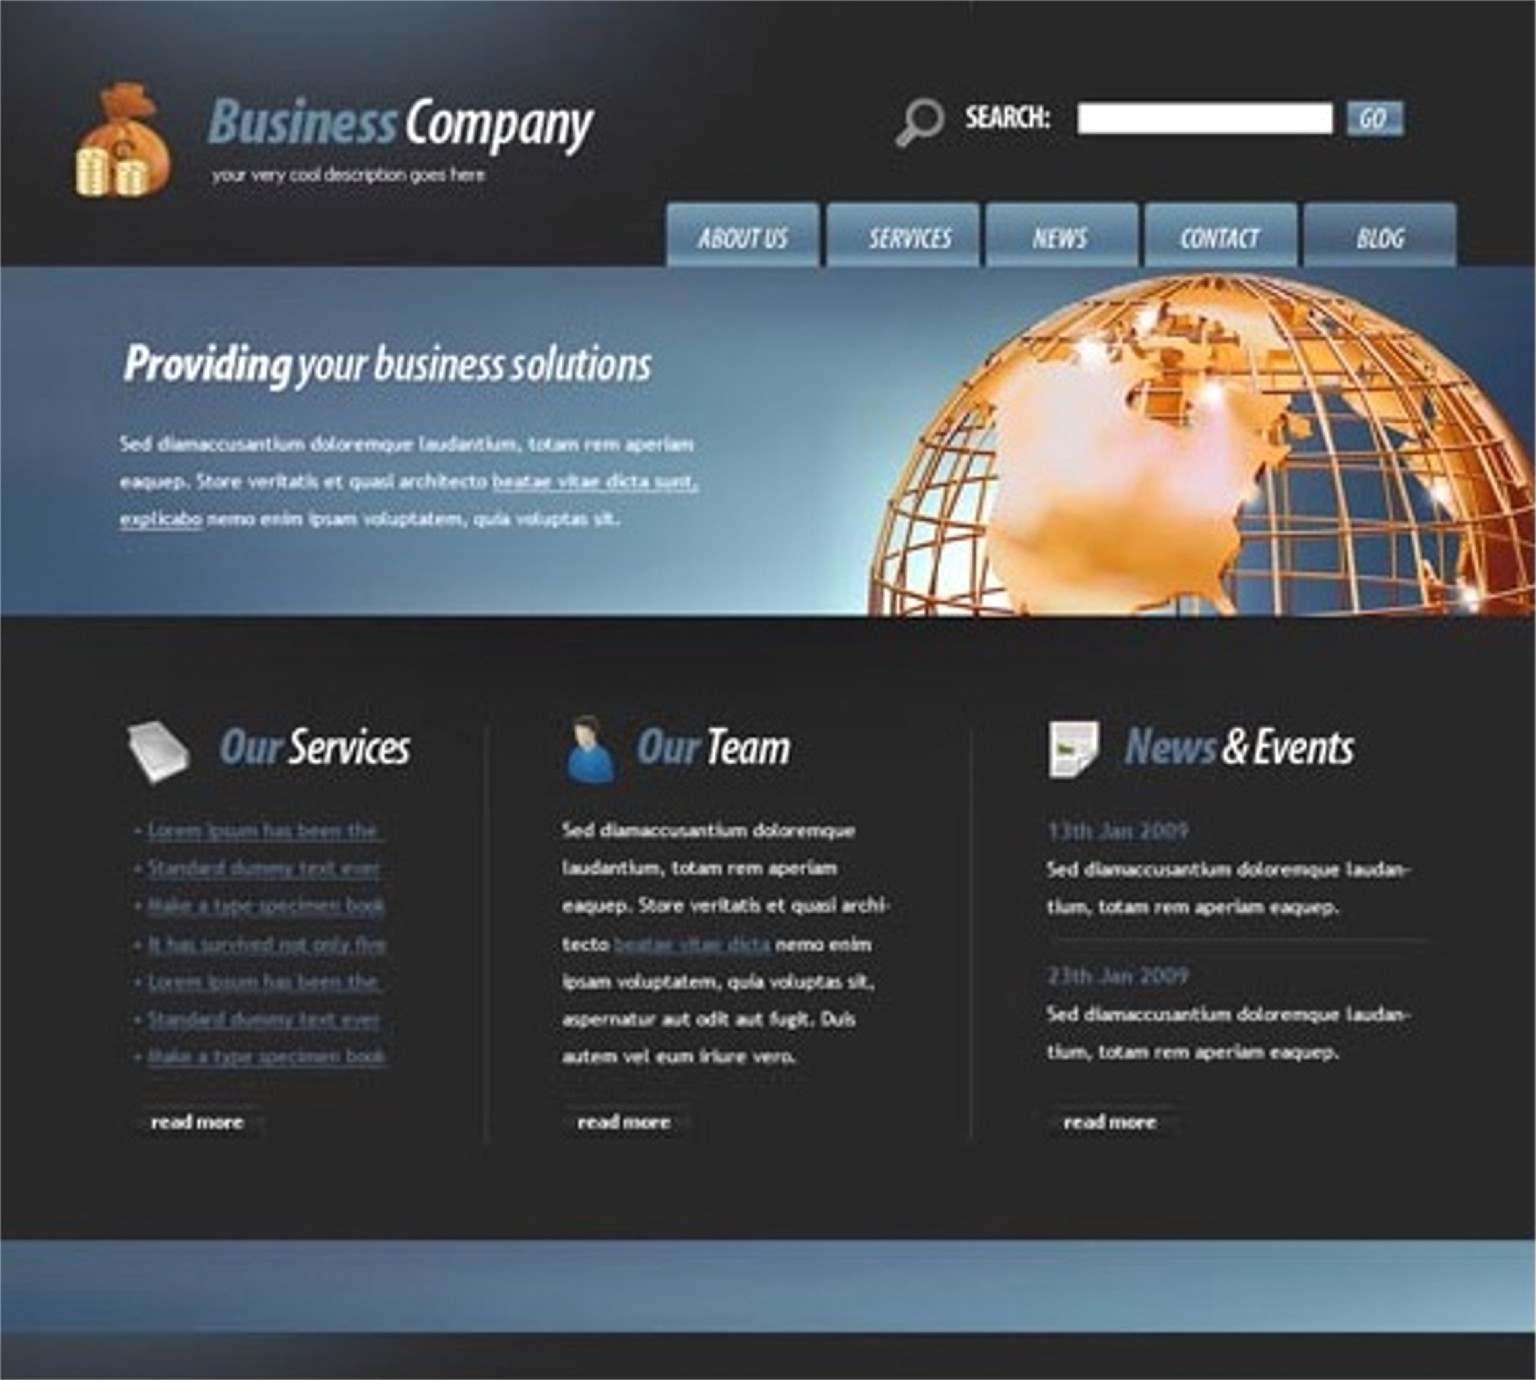 JRL-Enterprises LLC Web Templates10110